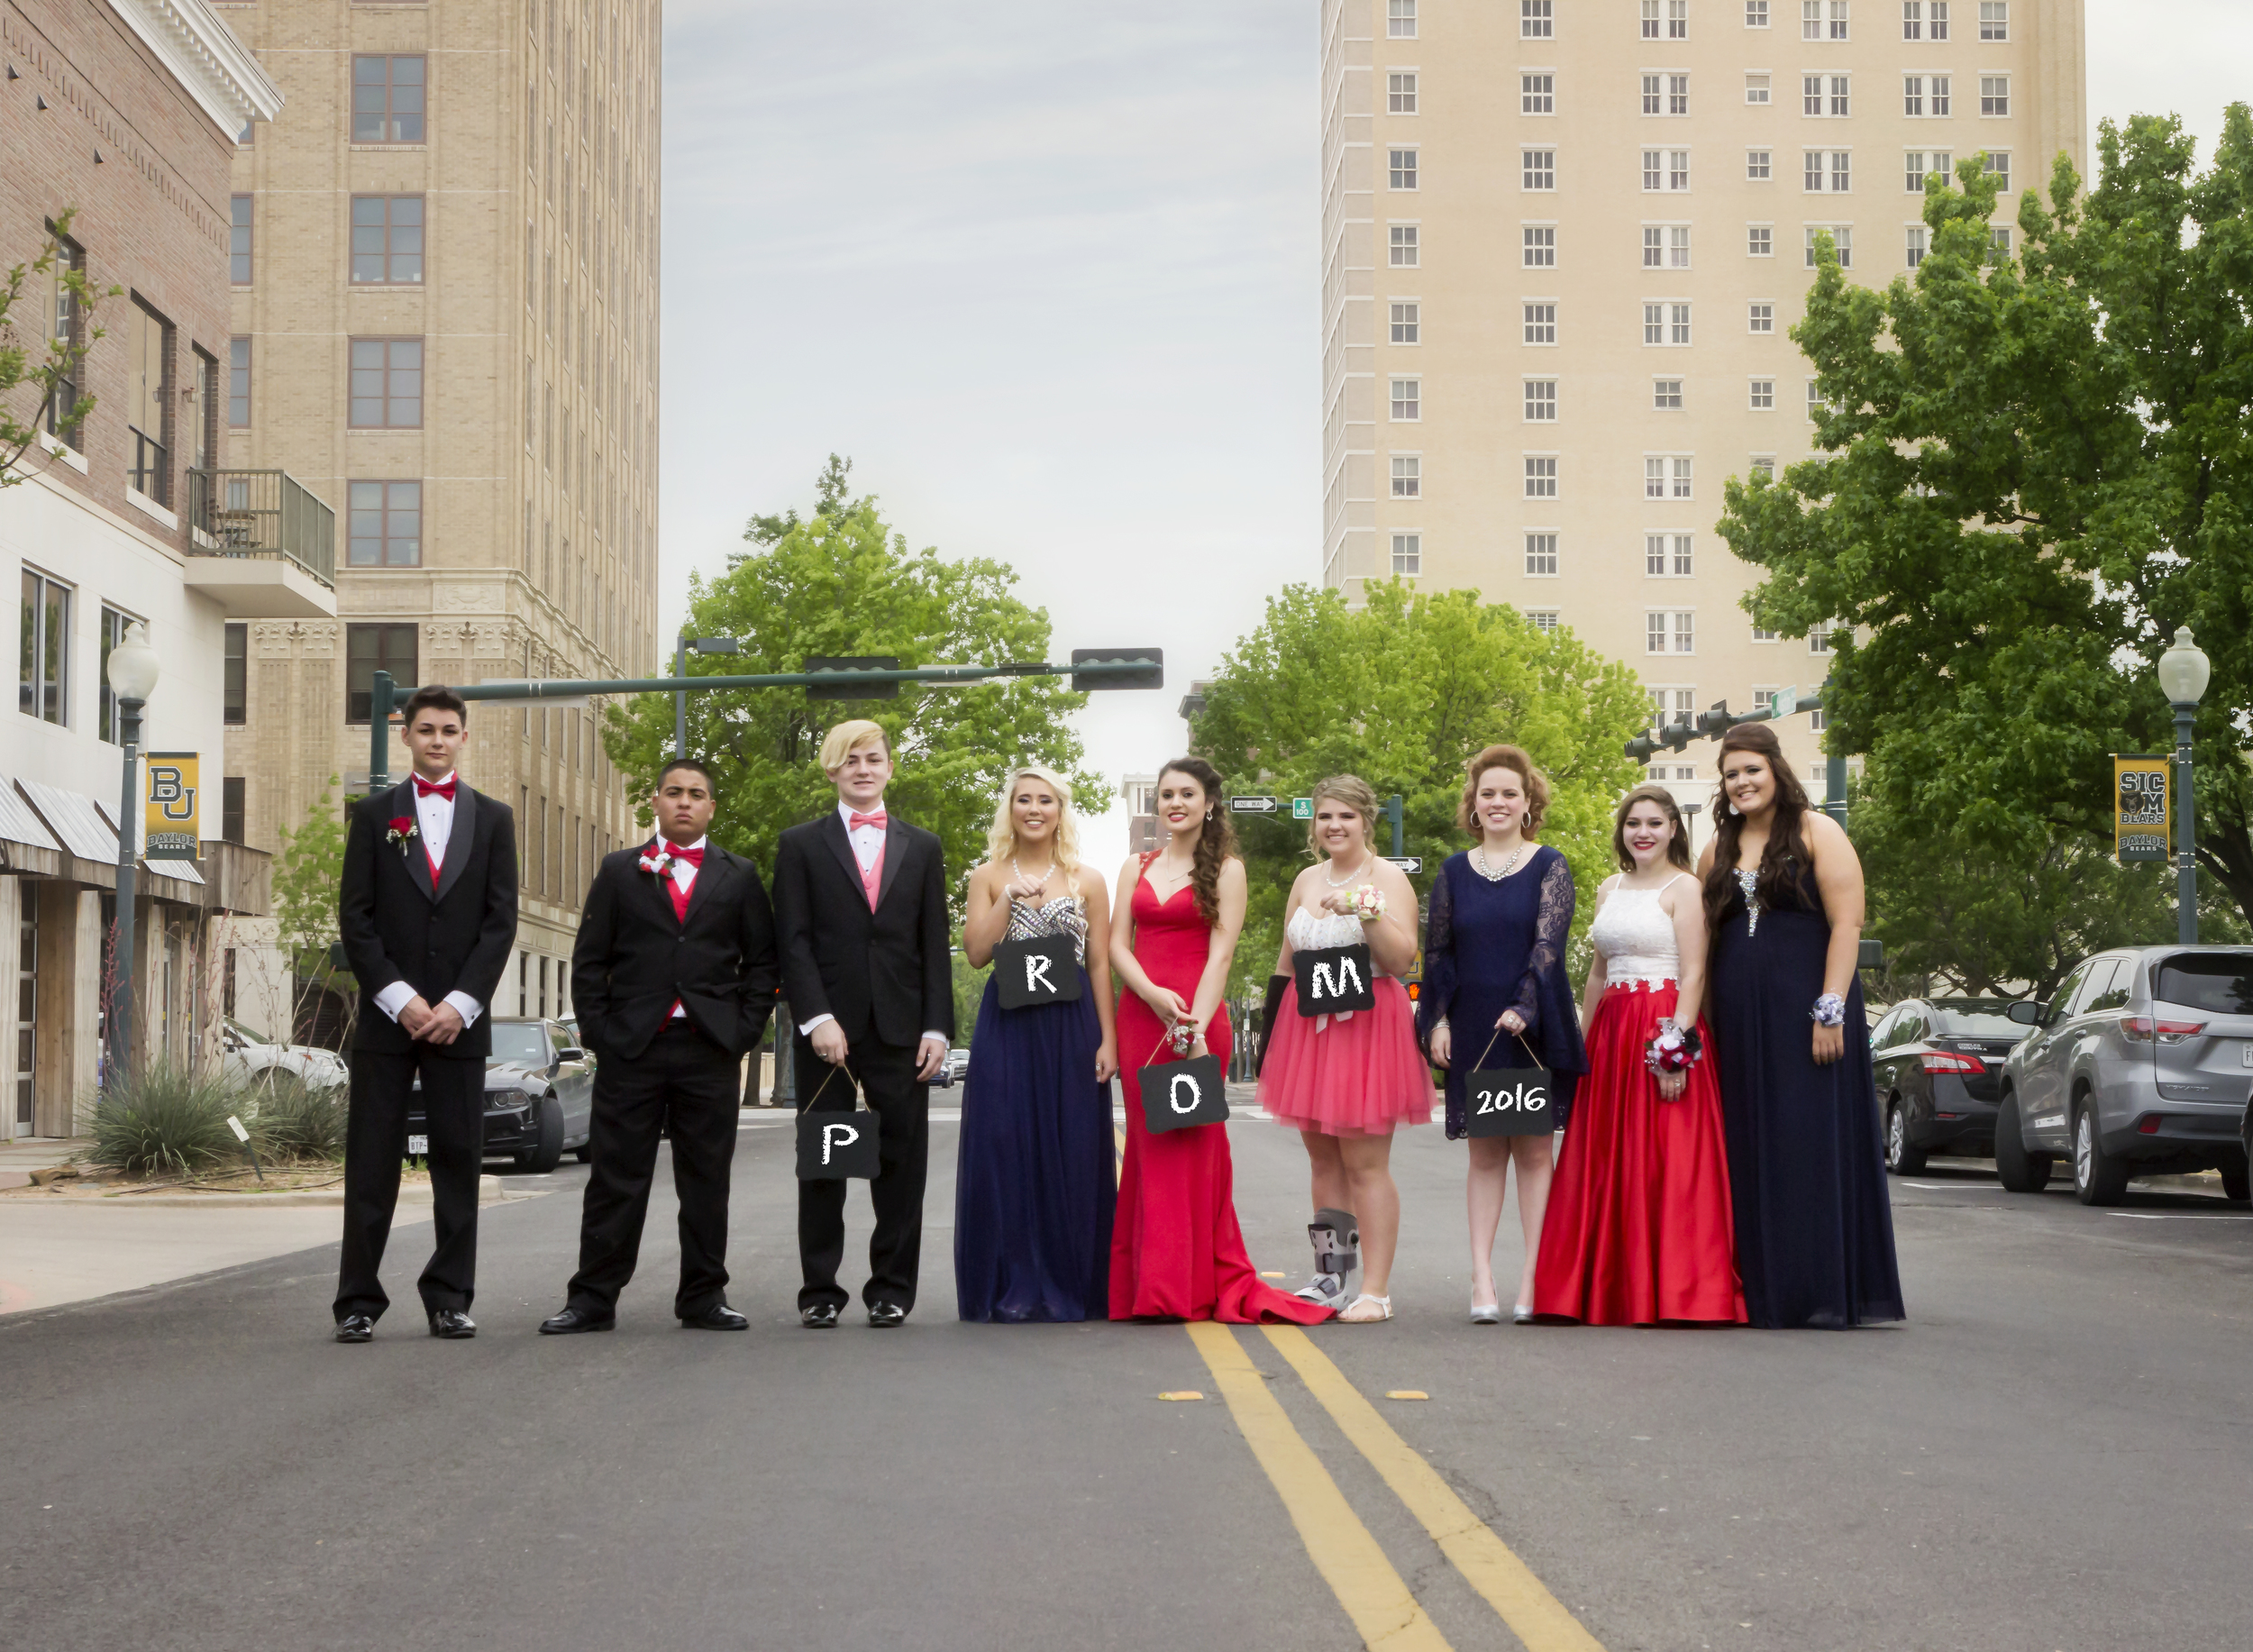 The prom party goers!